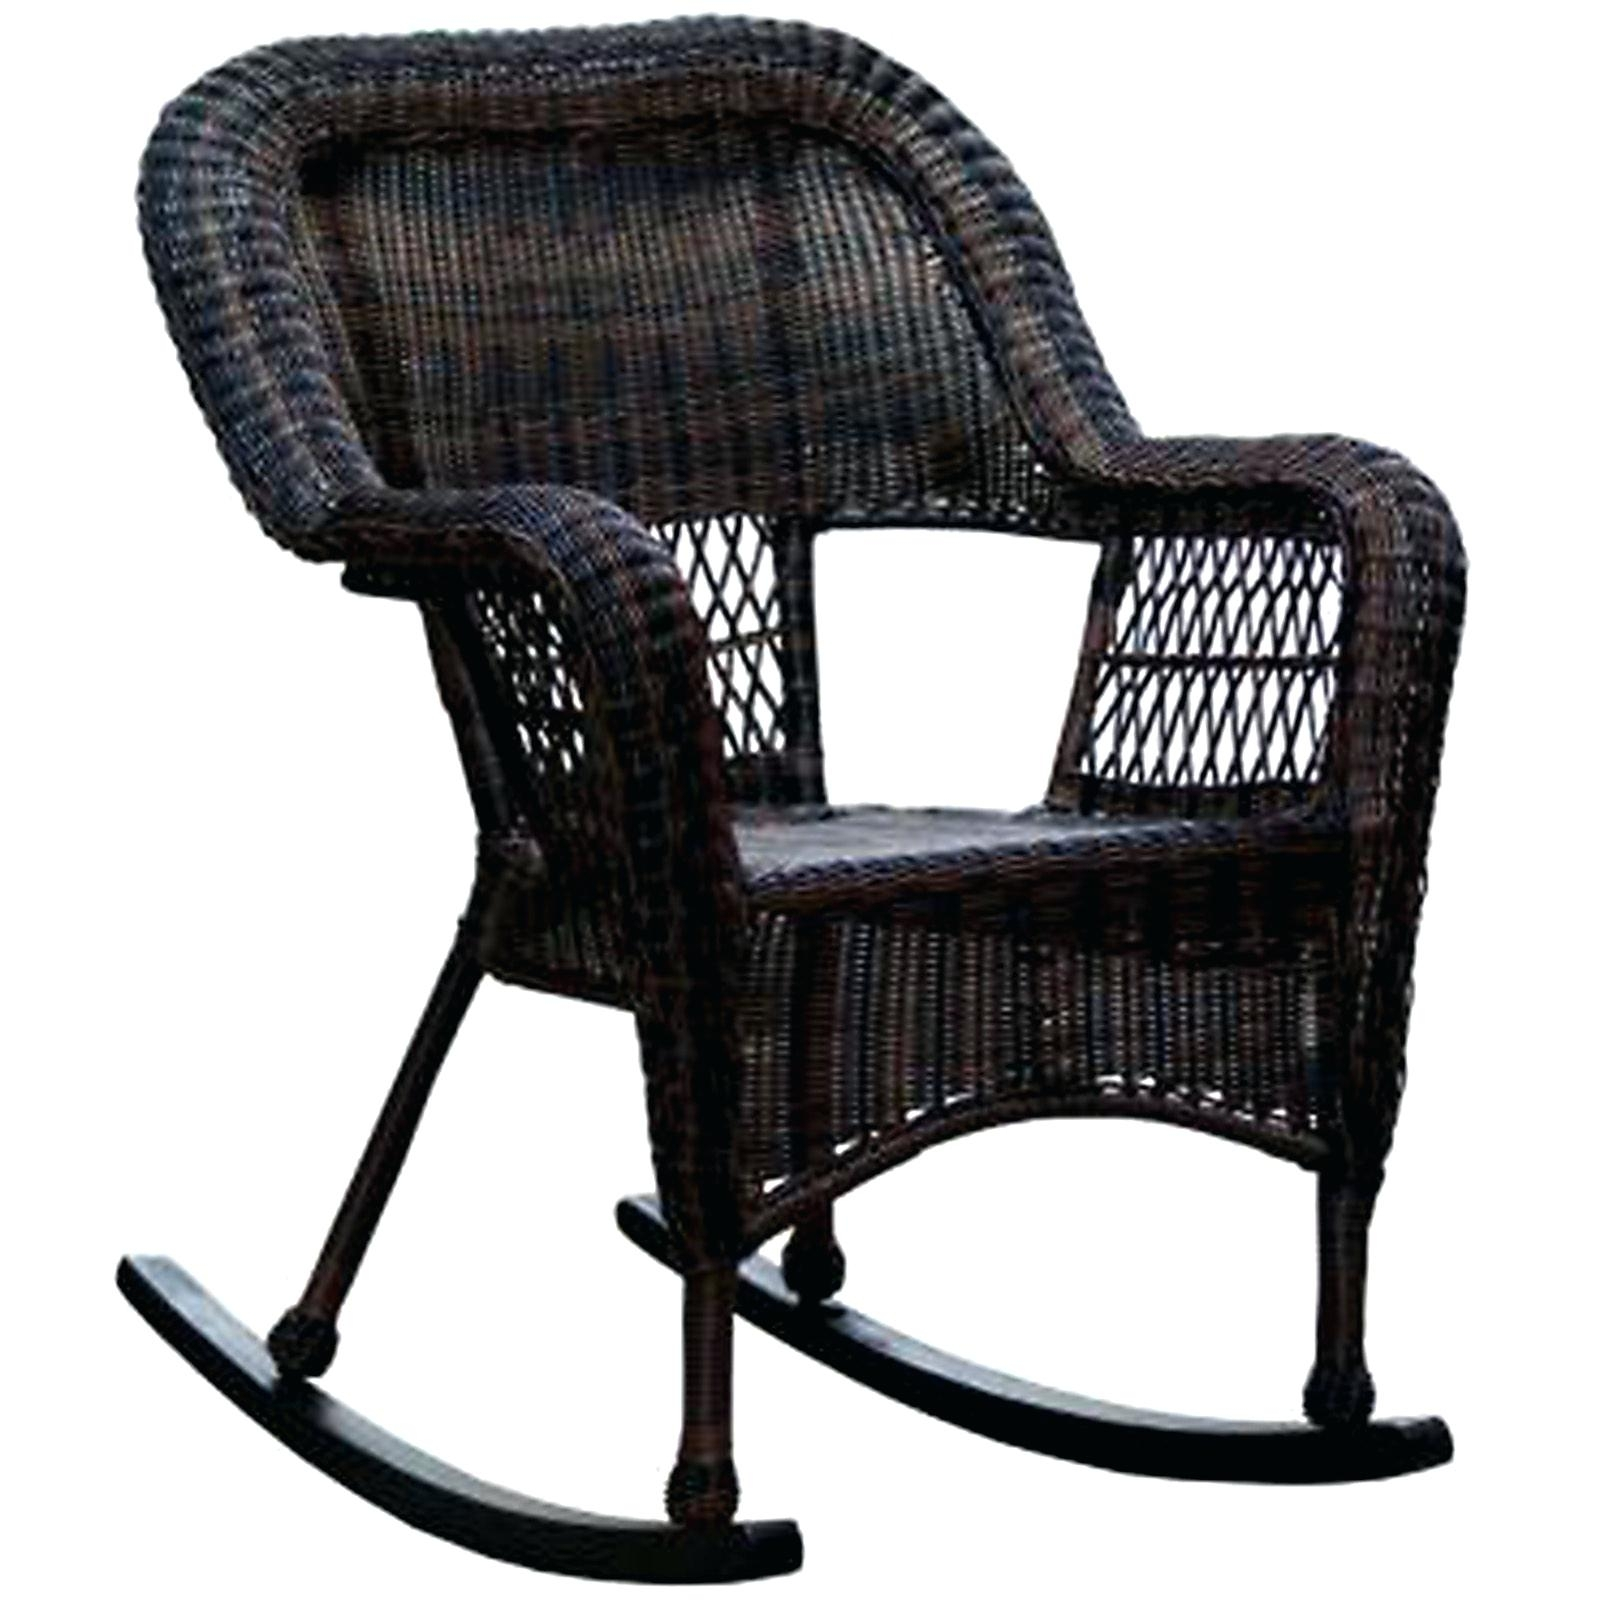 Patio Rocking Chairs Patio Rocking Chairs Metal – Chair Design Ideas Within Outdoor Patio Metal Rocking Chairs (View 7 of 15)